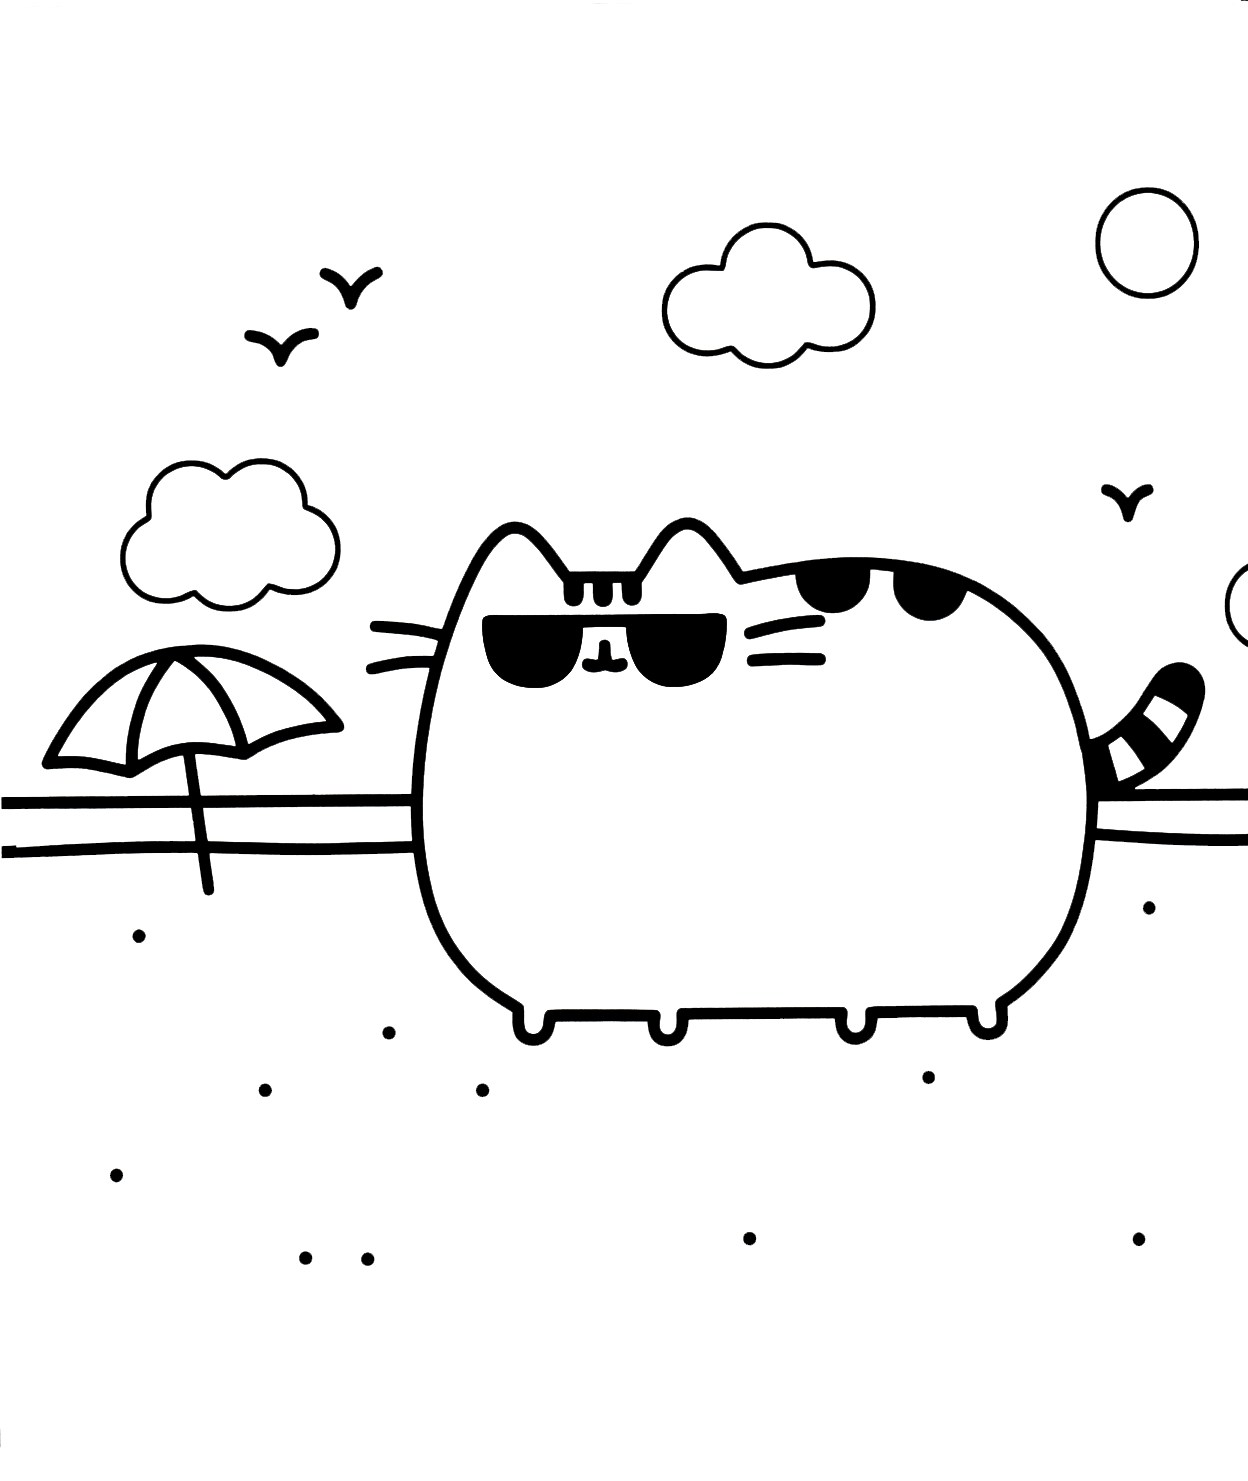 donut pusheen cat coloring pages pusheen cat coloring pages black and white coloring pages pusheen pages cat donut coloring